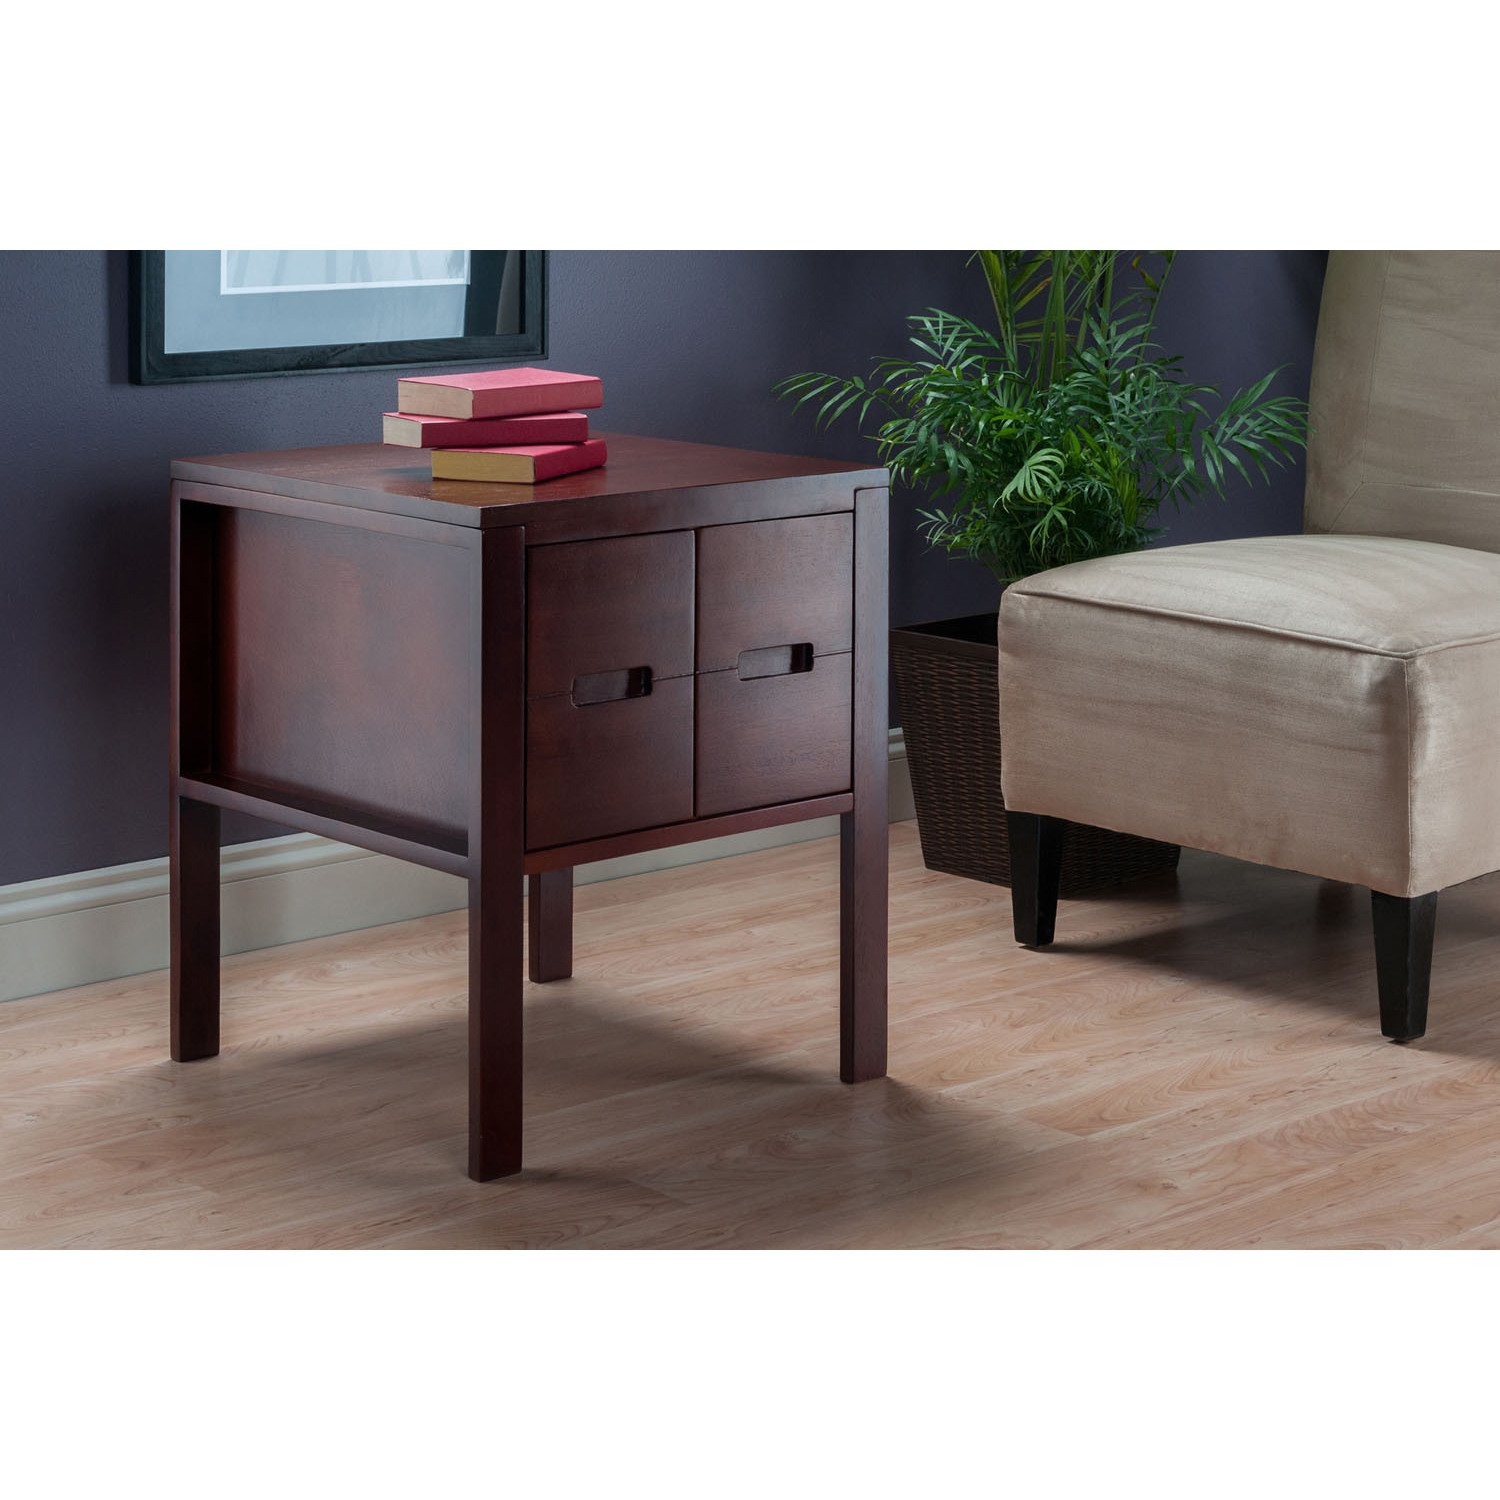 winsome bora front facing accent table with slide out shelves end instructions free shipping today pink cocktails kitchen lamp half moon rustic wood fine linens box side bins ikea